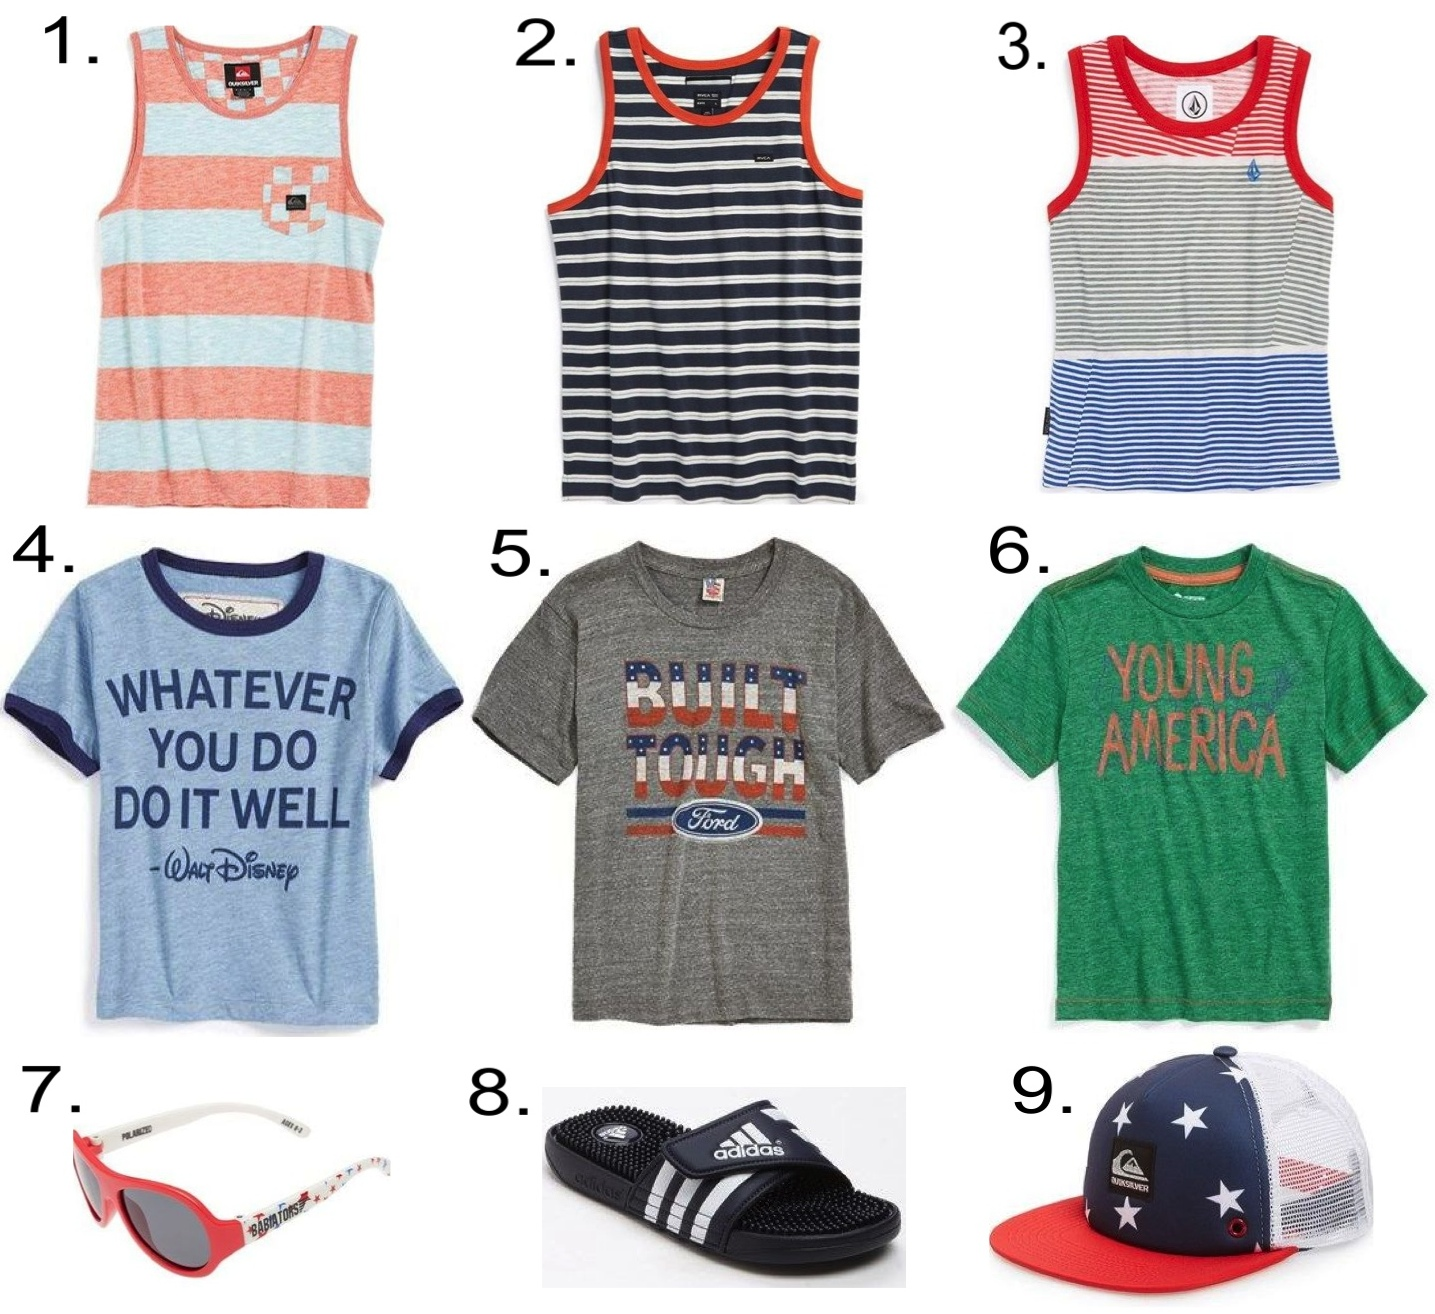 Boys Labor Day Striped Tank Tops, Statement Graphic T-Shirts and Summer Accessories... 1.  Quiksilver Tank    2.  RVCA Stripe Cotton Tank  3.  Volcom Stripe Tank      4.  Peek Graphic T-Shirt      5.  Junk Food Graphic T-Shirt      6.  Tucker + Tate Graphic T-Shirt  7.  Babiators Polarized Sunglasses      8.  adidas 'Adissage' Sandal  9.  Quiksilver Trucker Hat